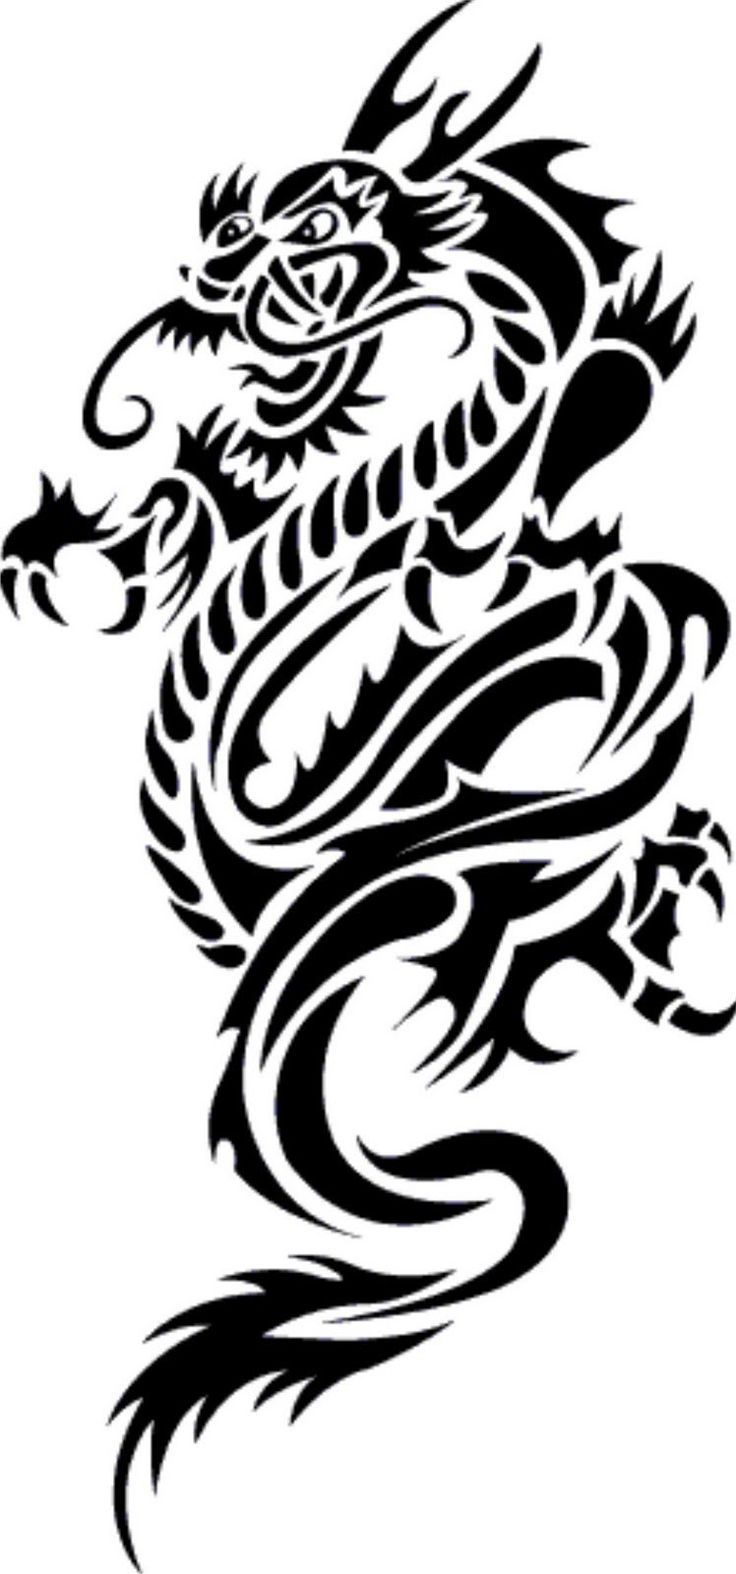 japanese dragon tattoo - Google Search